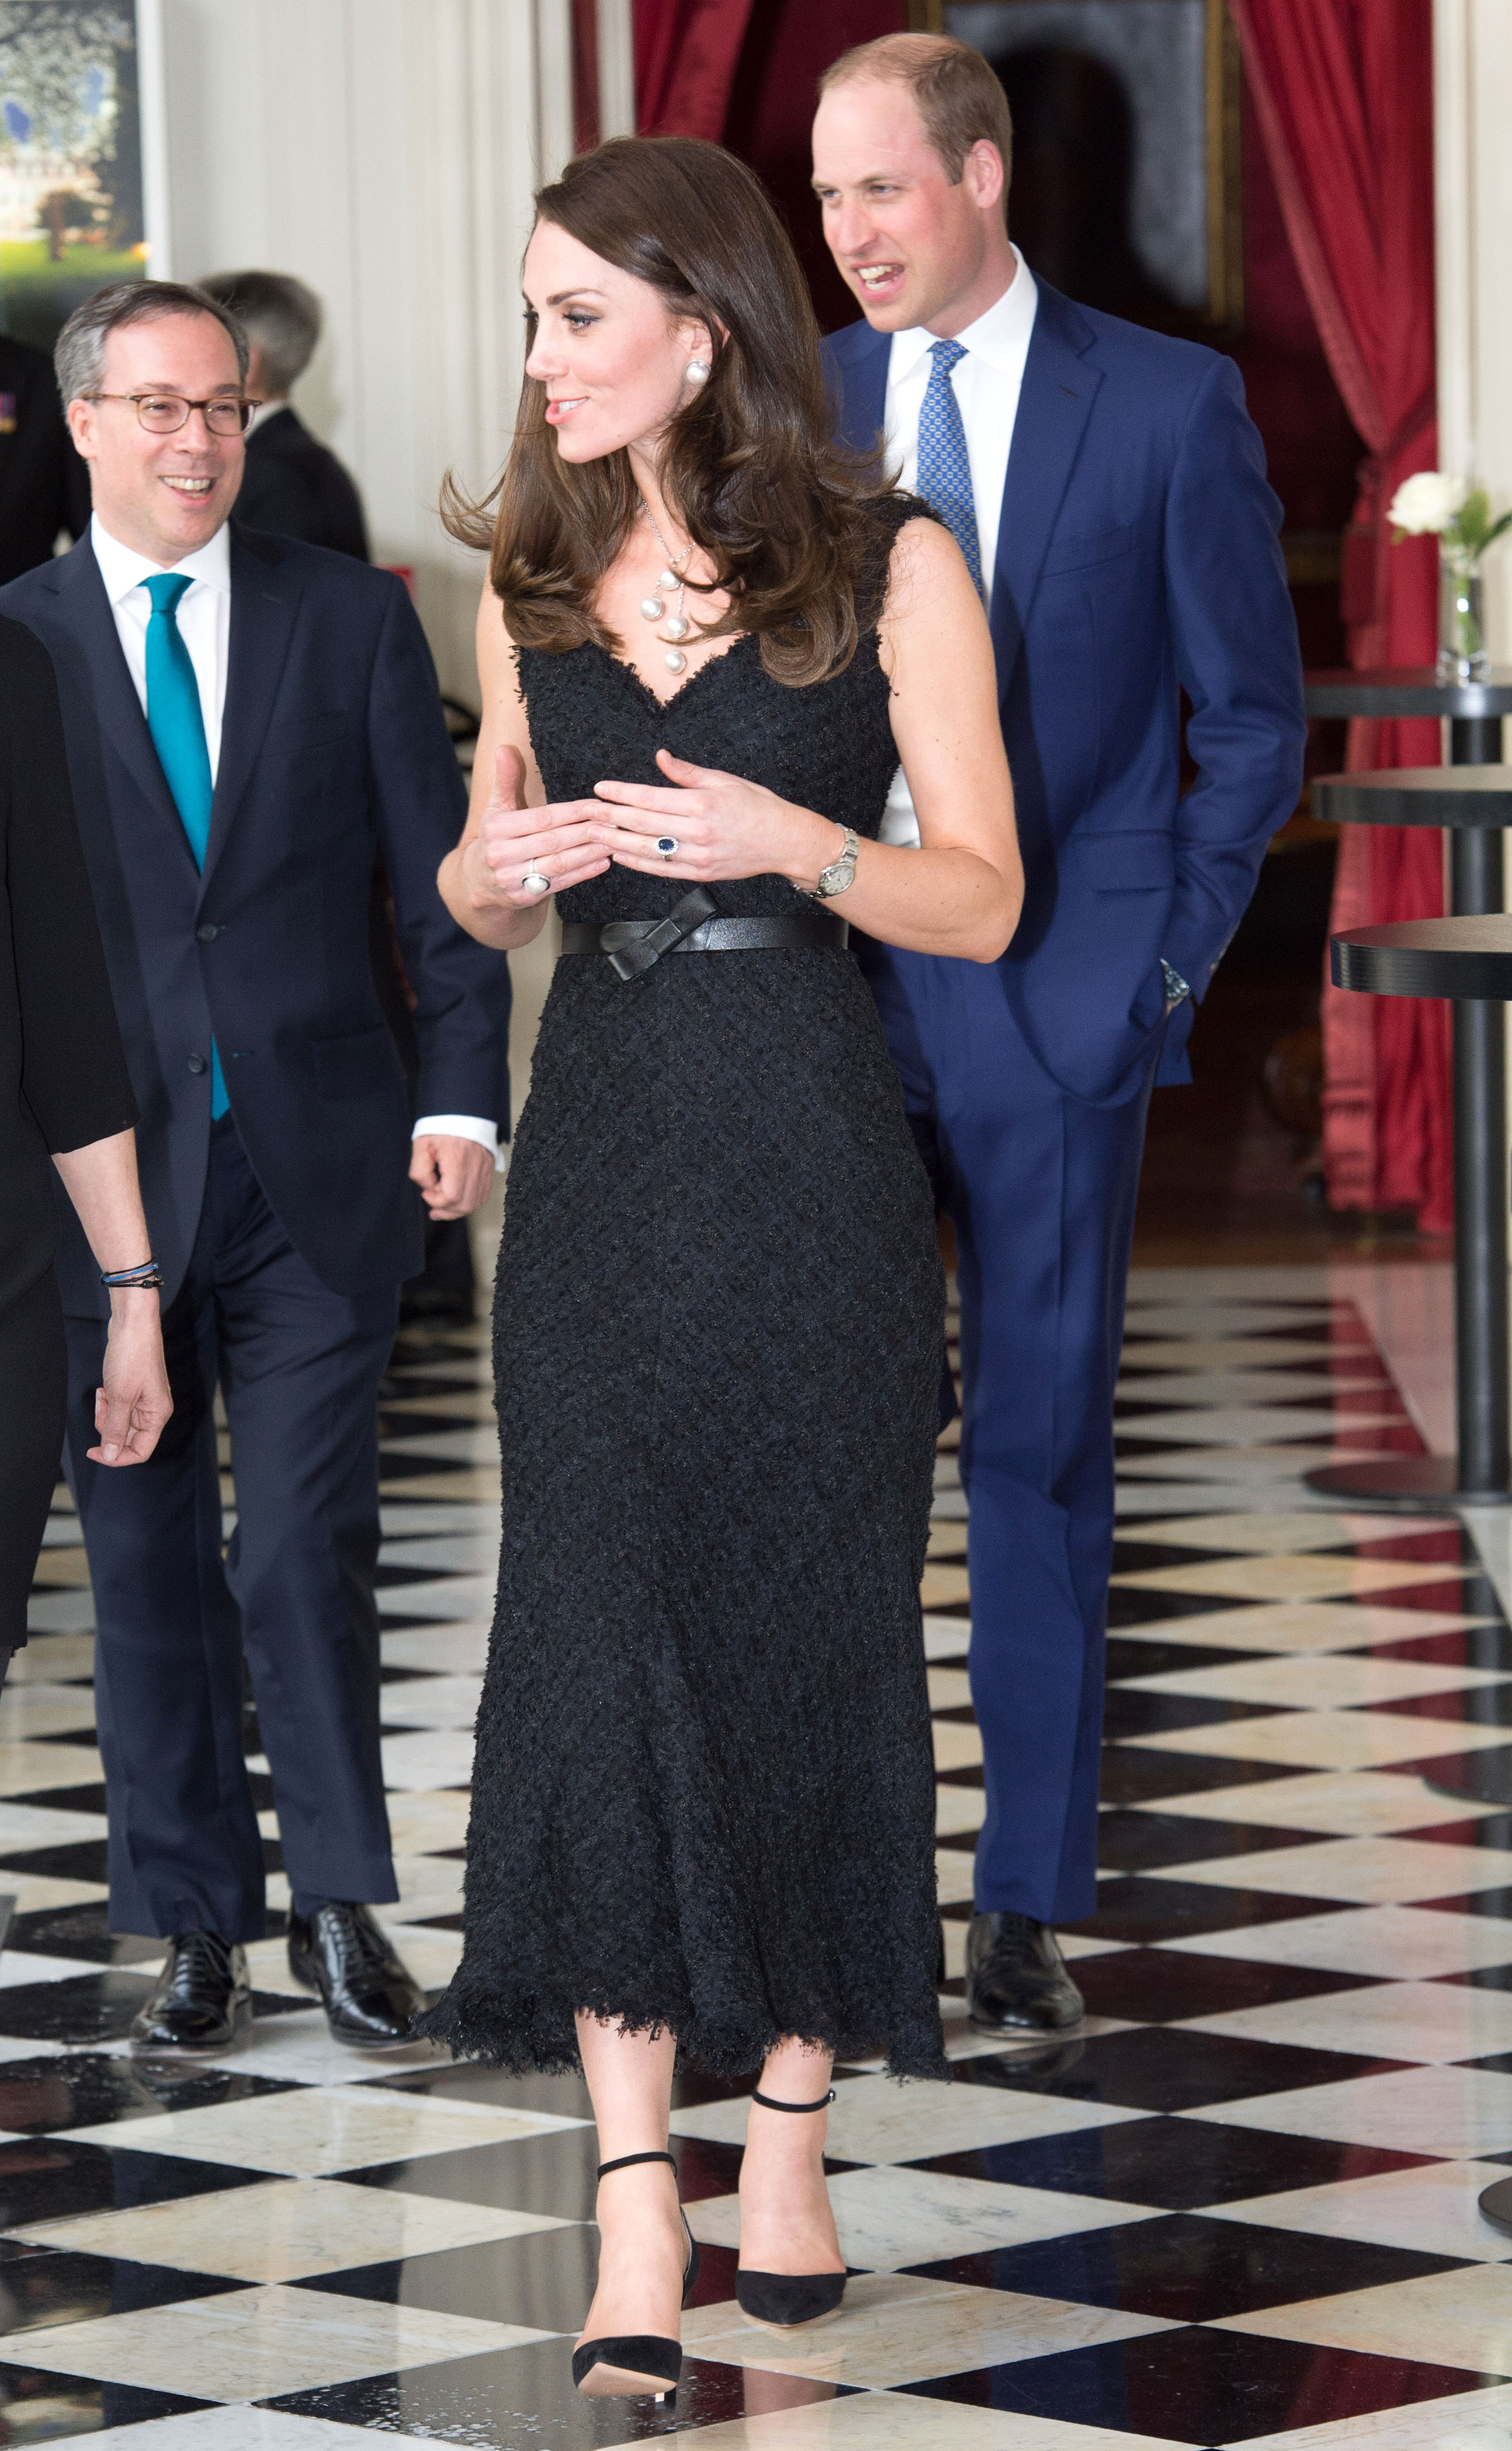 714b6bd978e Duchess Kate donned the most Parisian-inspired look for her visit to the  French capital on Friday